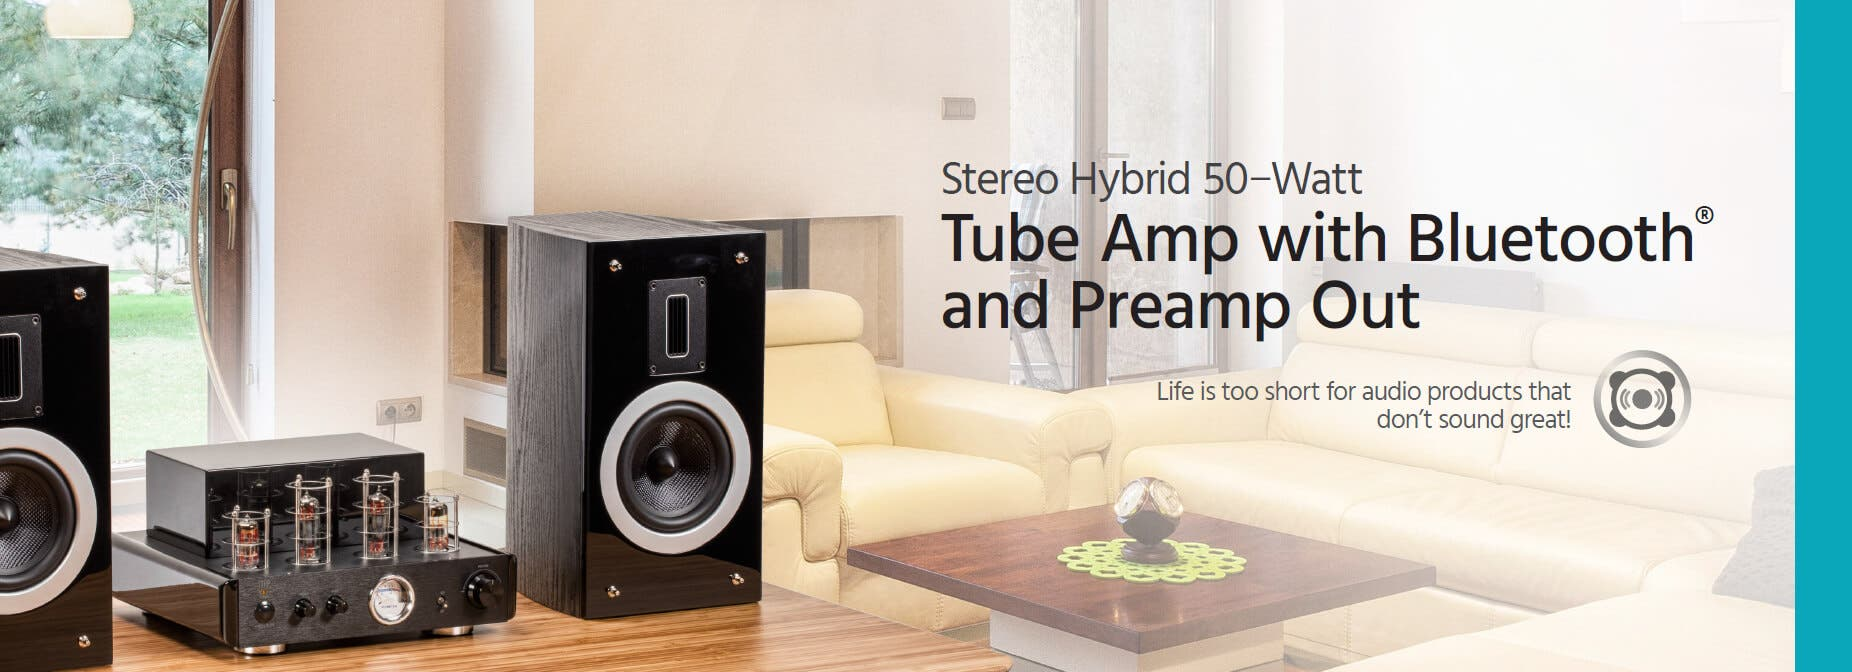 Tube Amp with Bluetooth